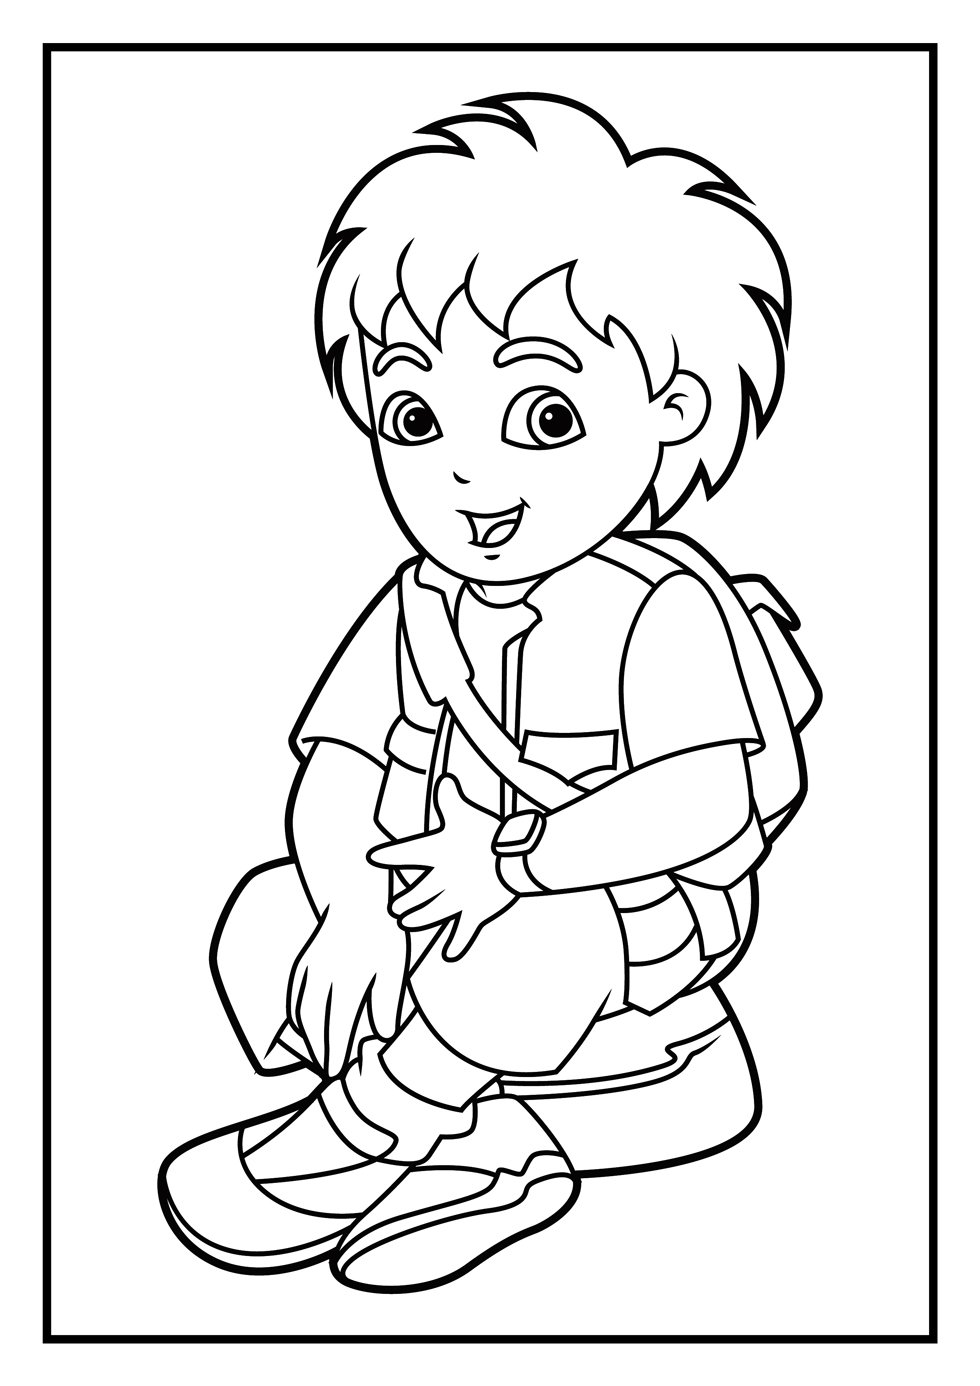 Coloring Pages Marvelous Diego Pages2 In